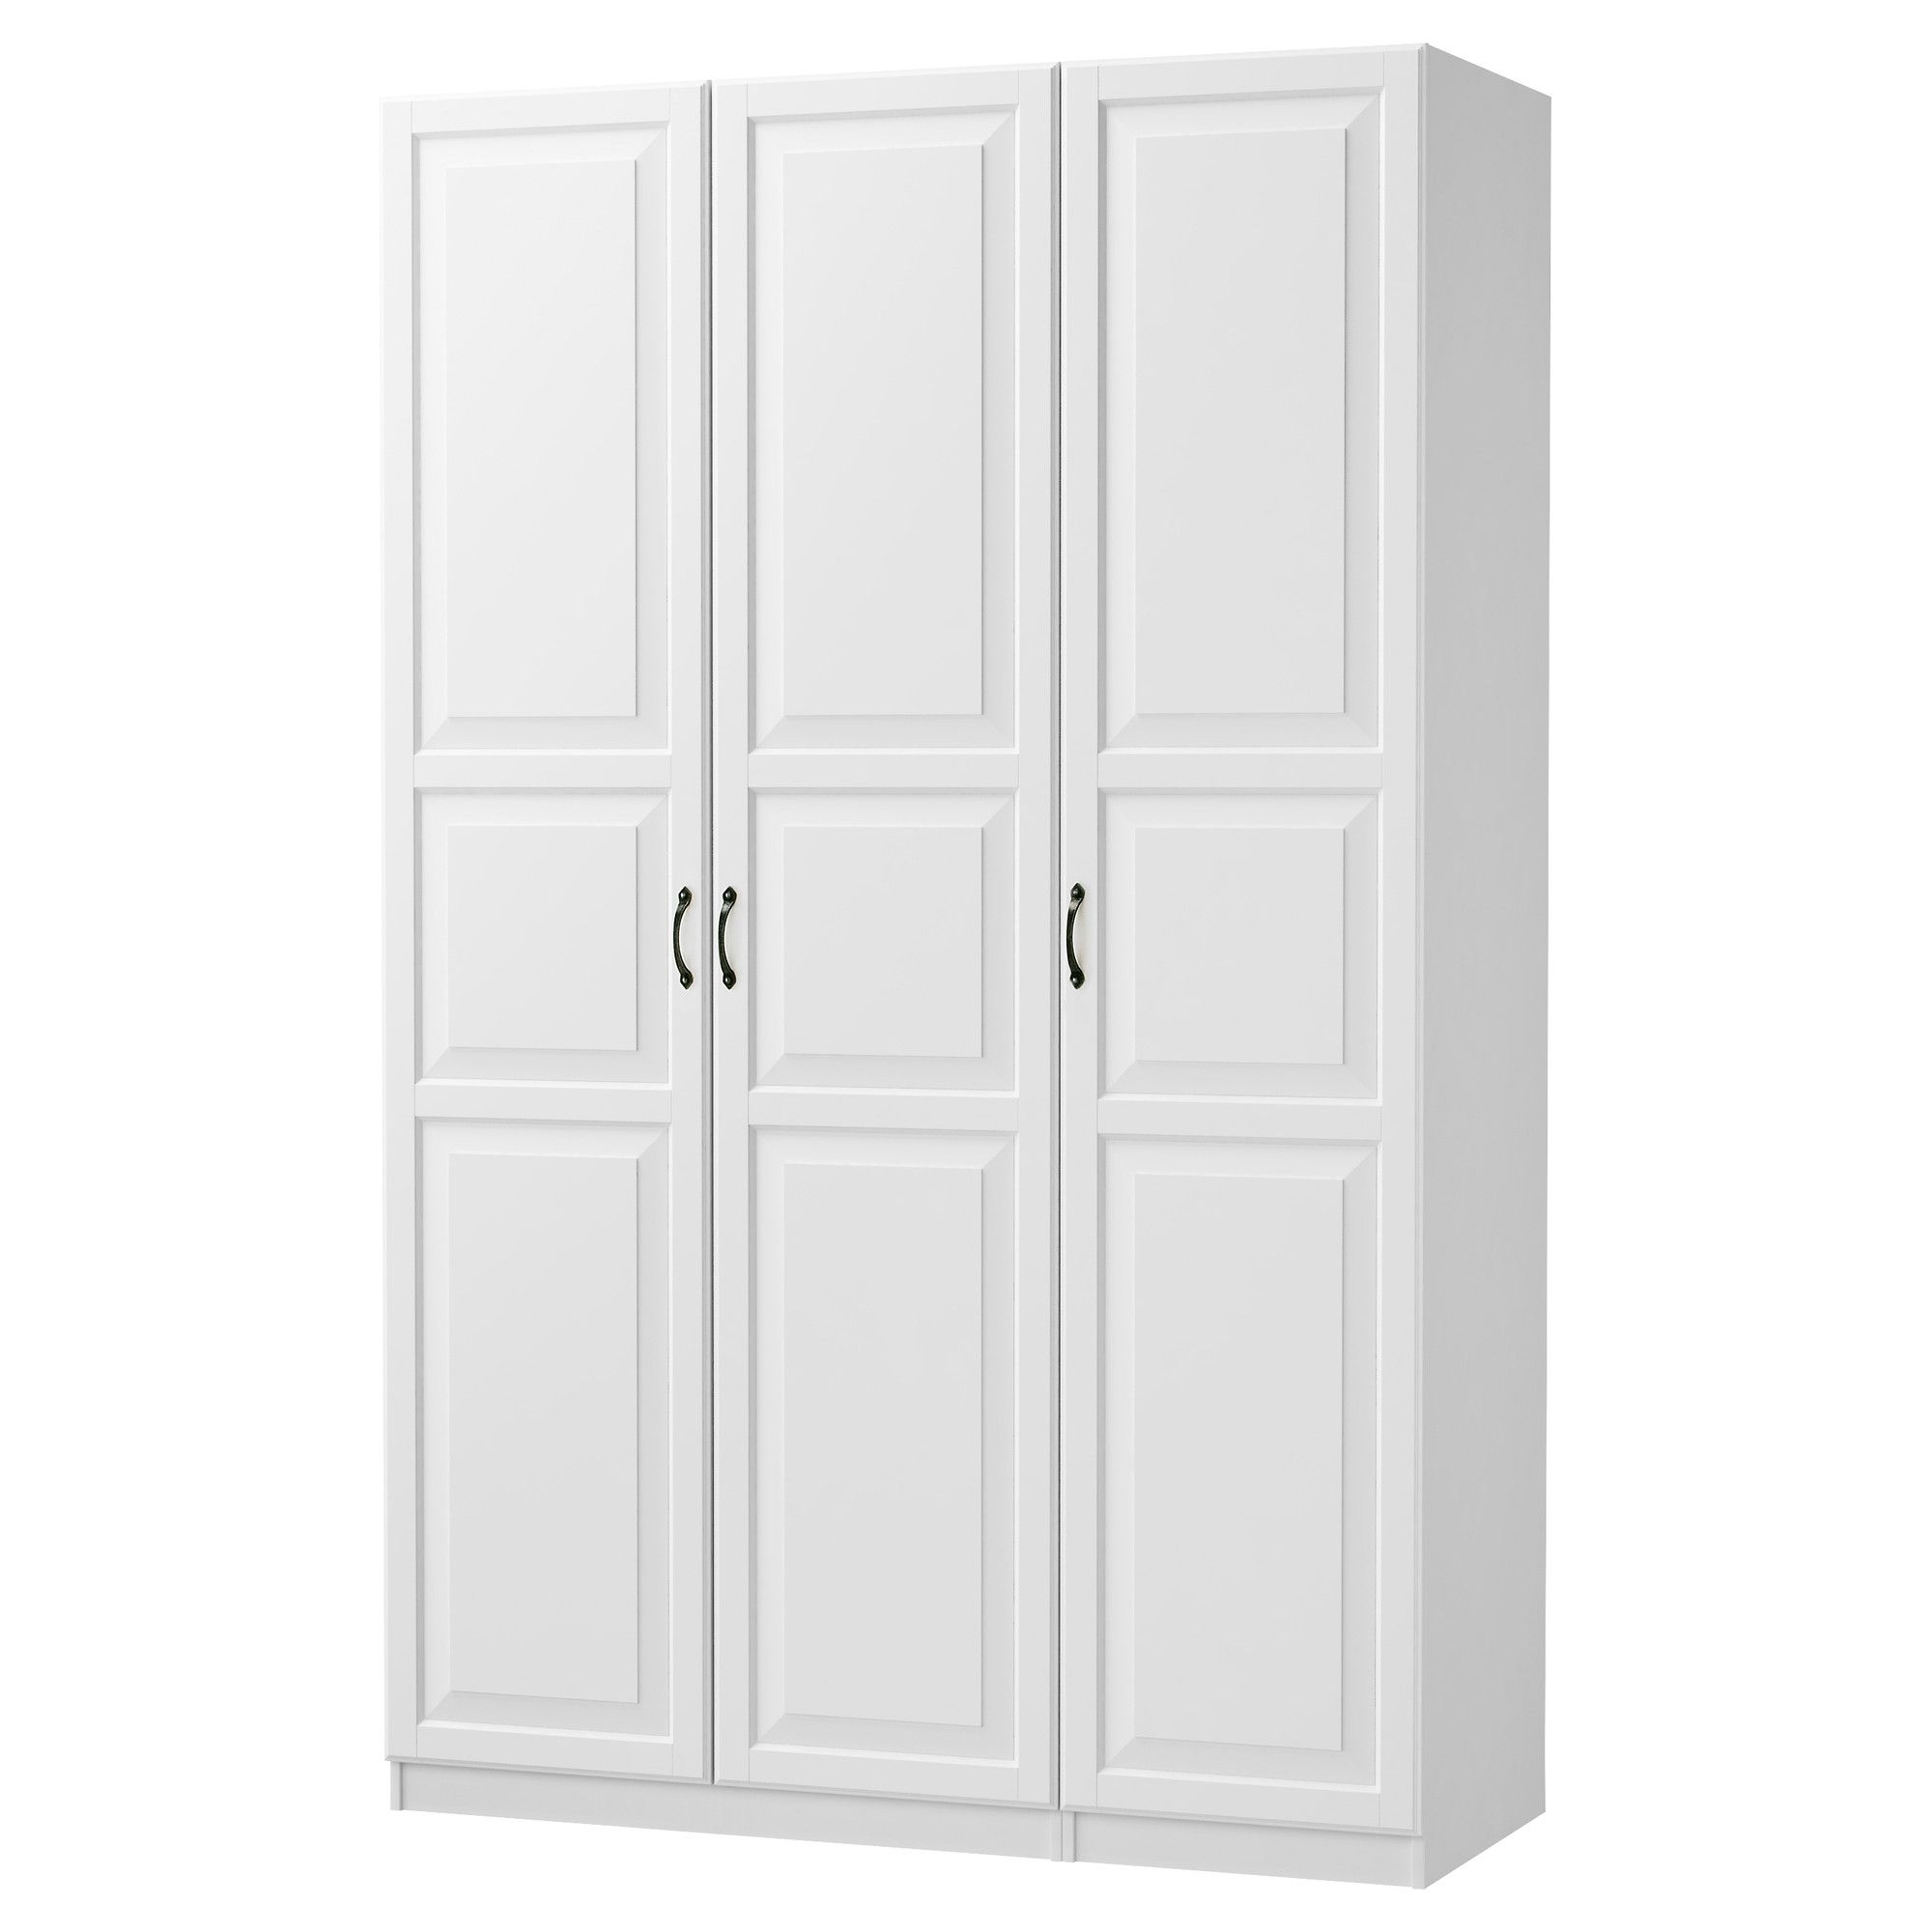 With Pax White58 Doors 58x79 Bergsbo 1 78x23 Wardrobe 3 CWodQrEexB